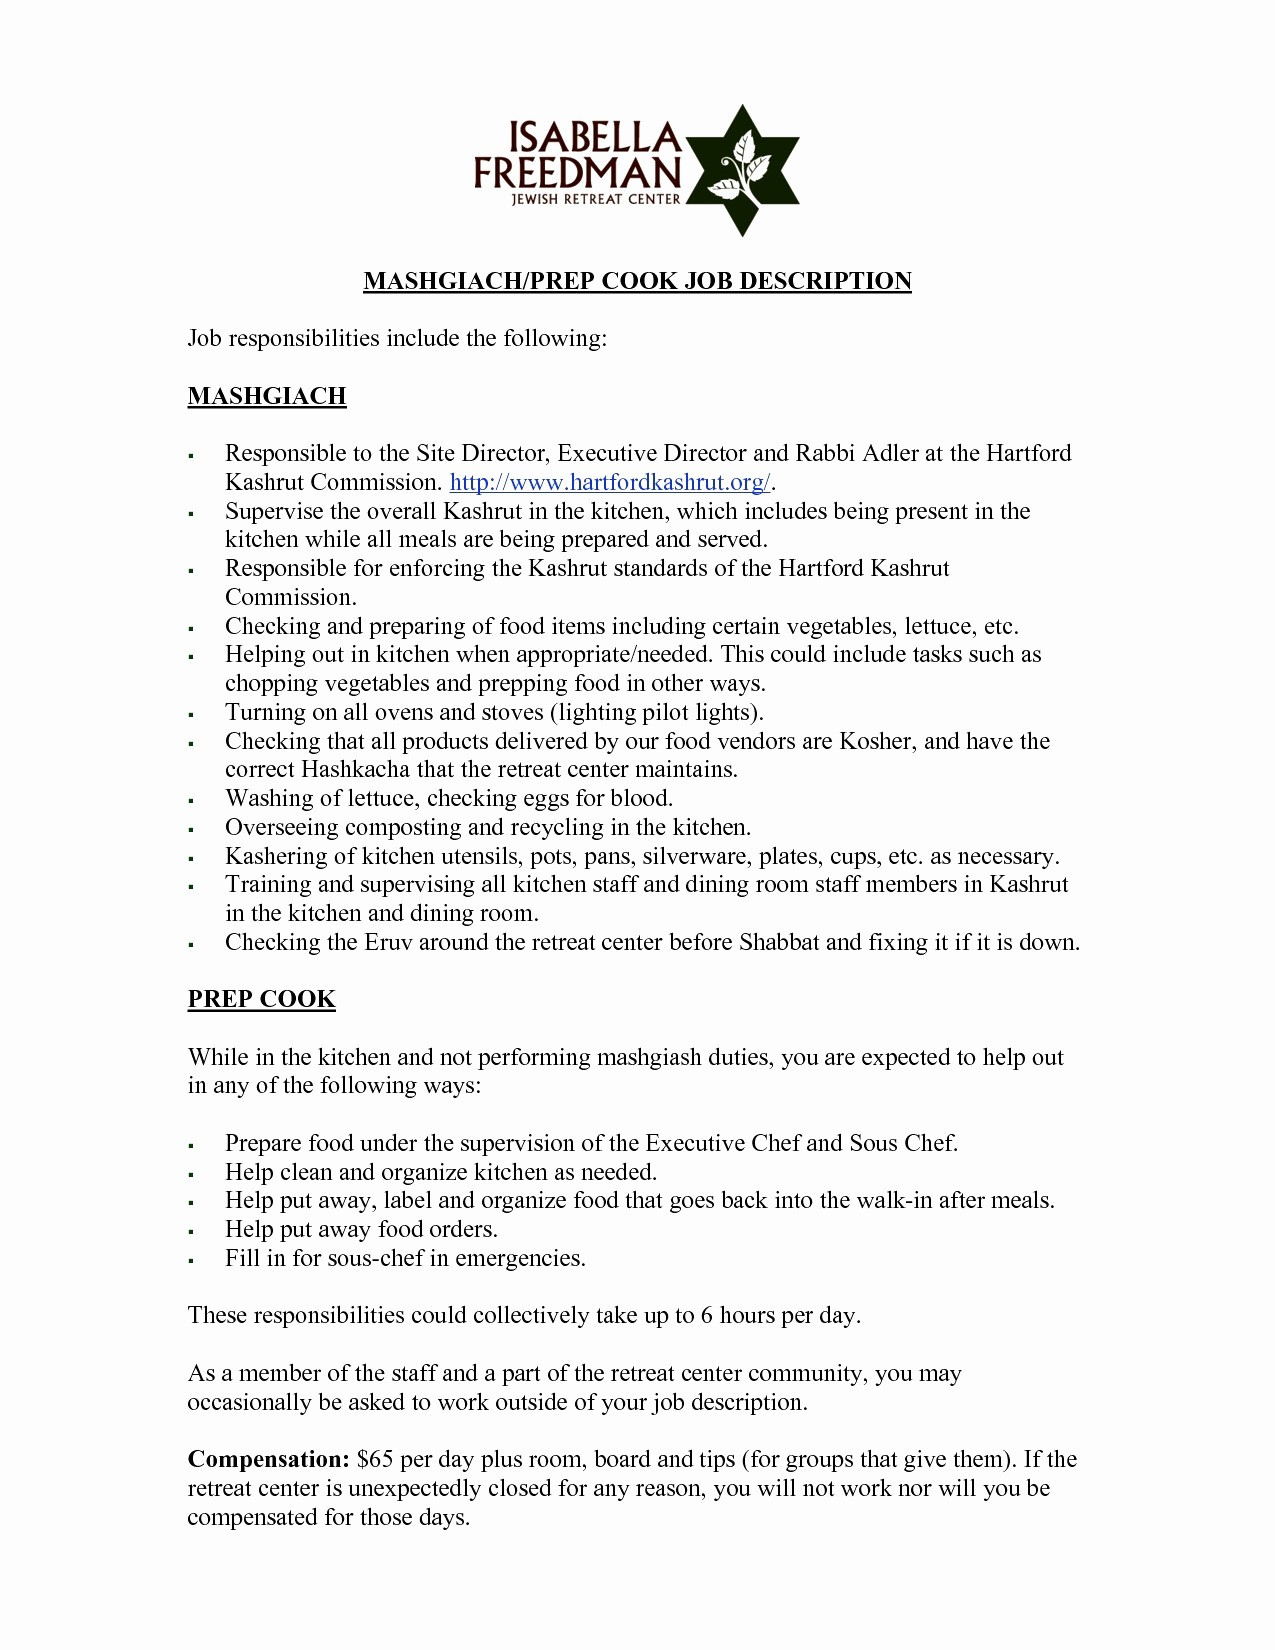 Leed Letter Template - Resume Letter Doc New Resume Doc Template Luxury Resume and Cover